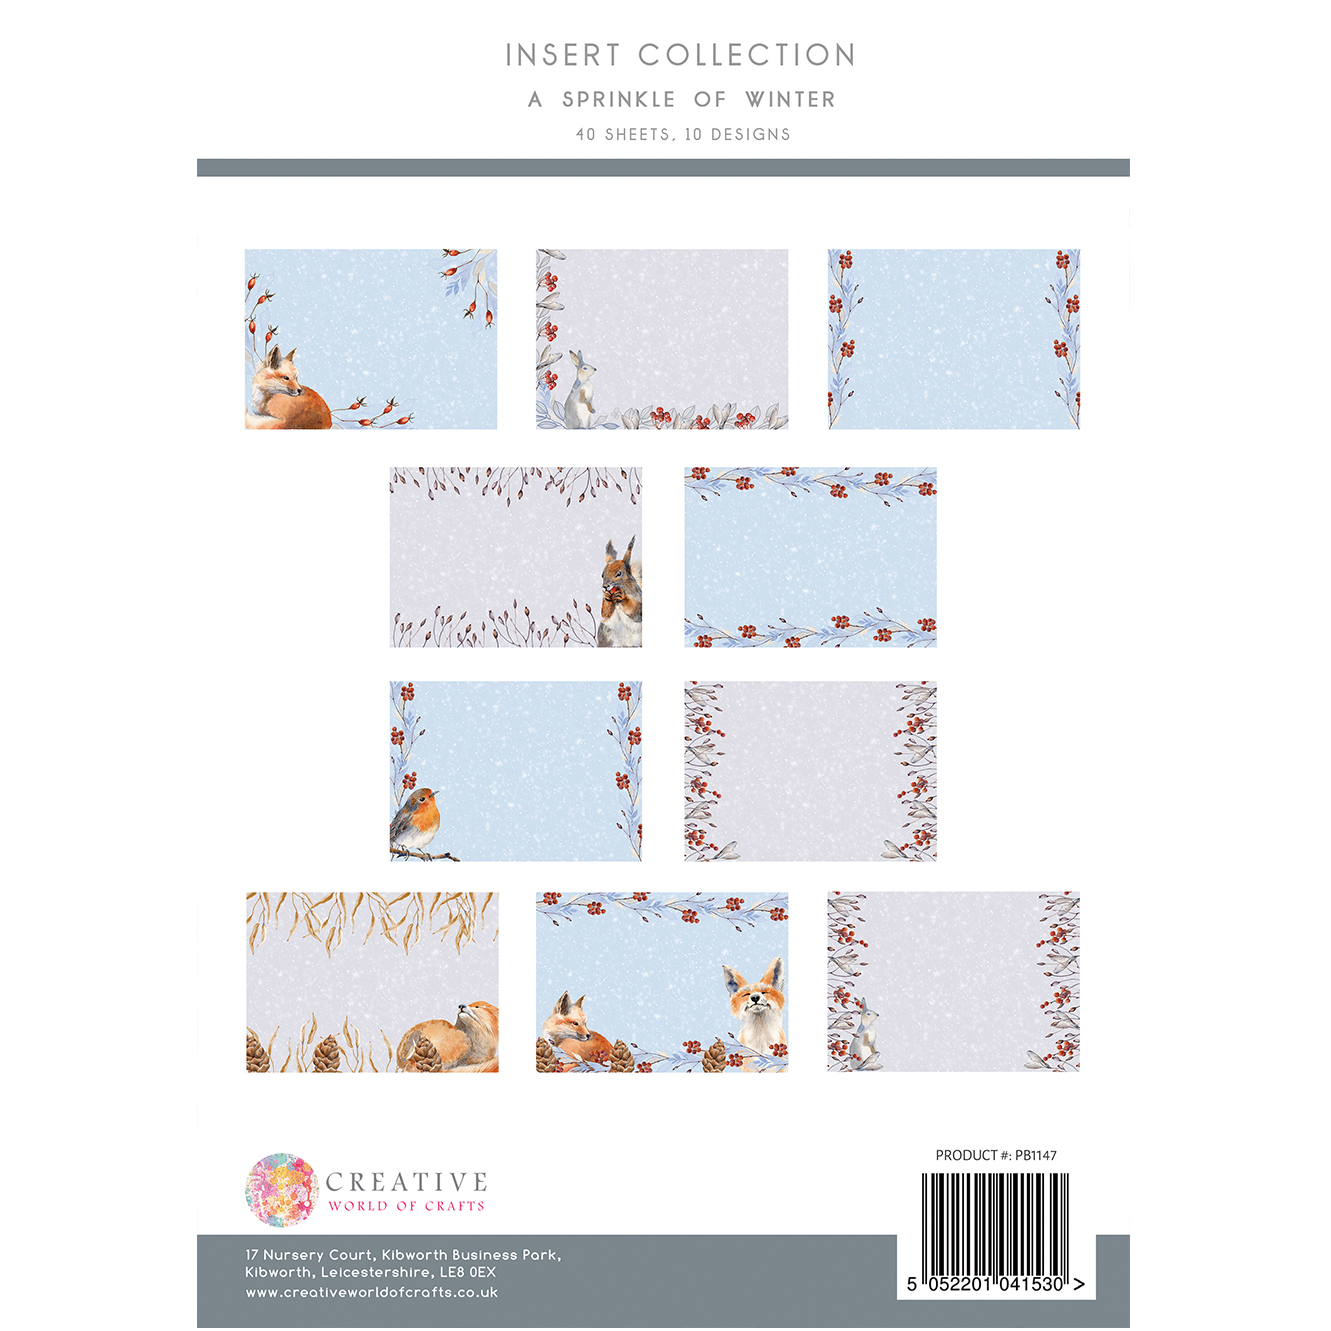 The Paper Boutique A Sprinkle of Winter Insert Collection